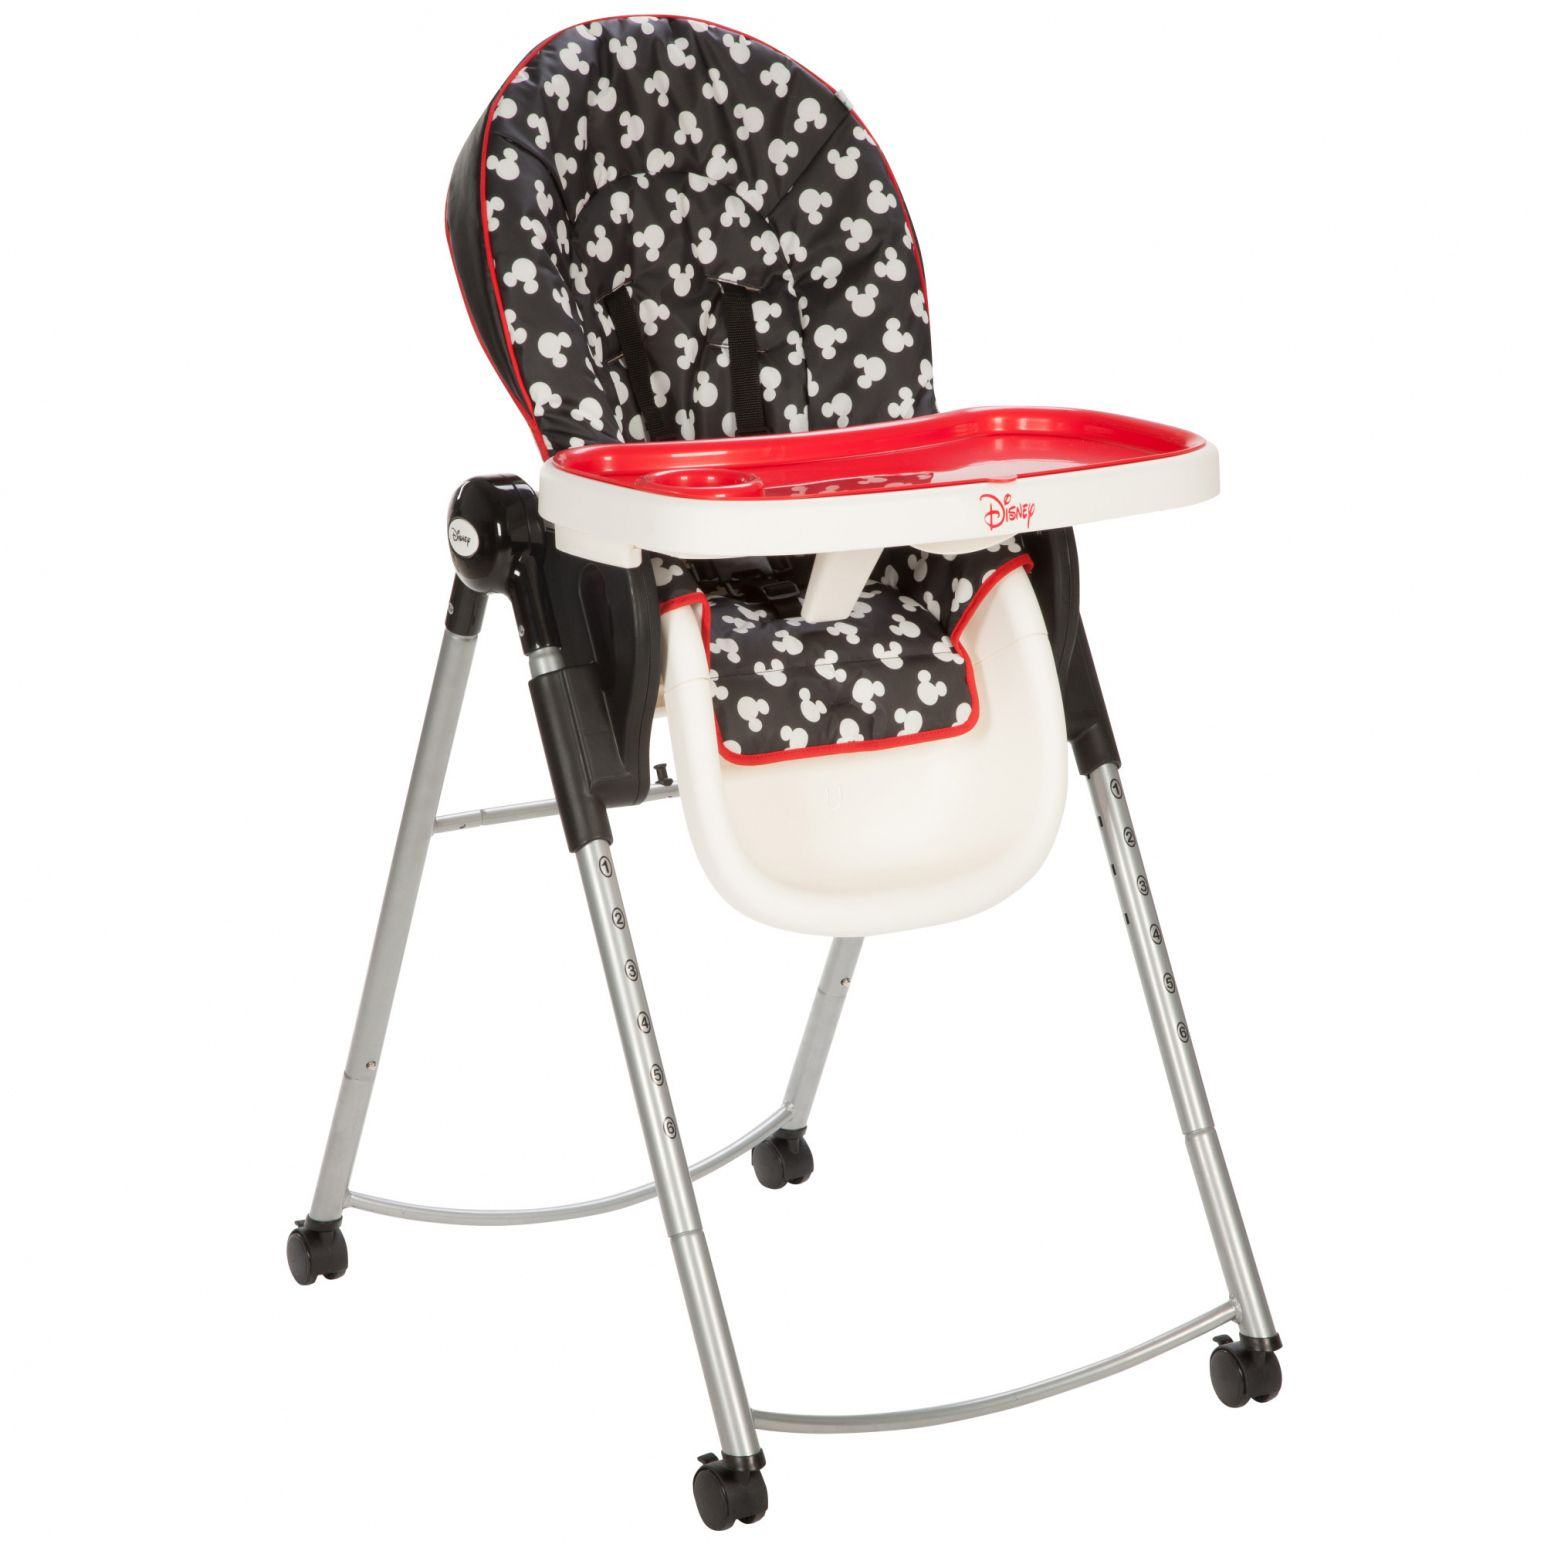 dining chair booster seat kmart hanging outdoor chairs australia pin oleh jooana di evolusion design concept pinterest baby 100 high diy kitchen countertop ideas check more at http